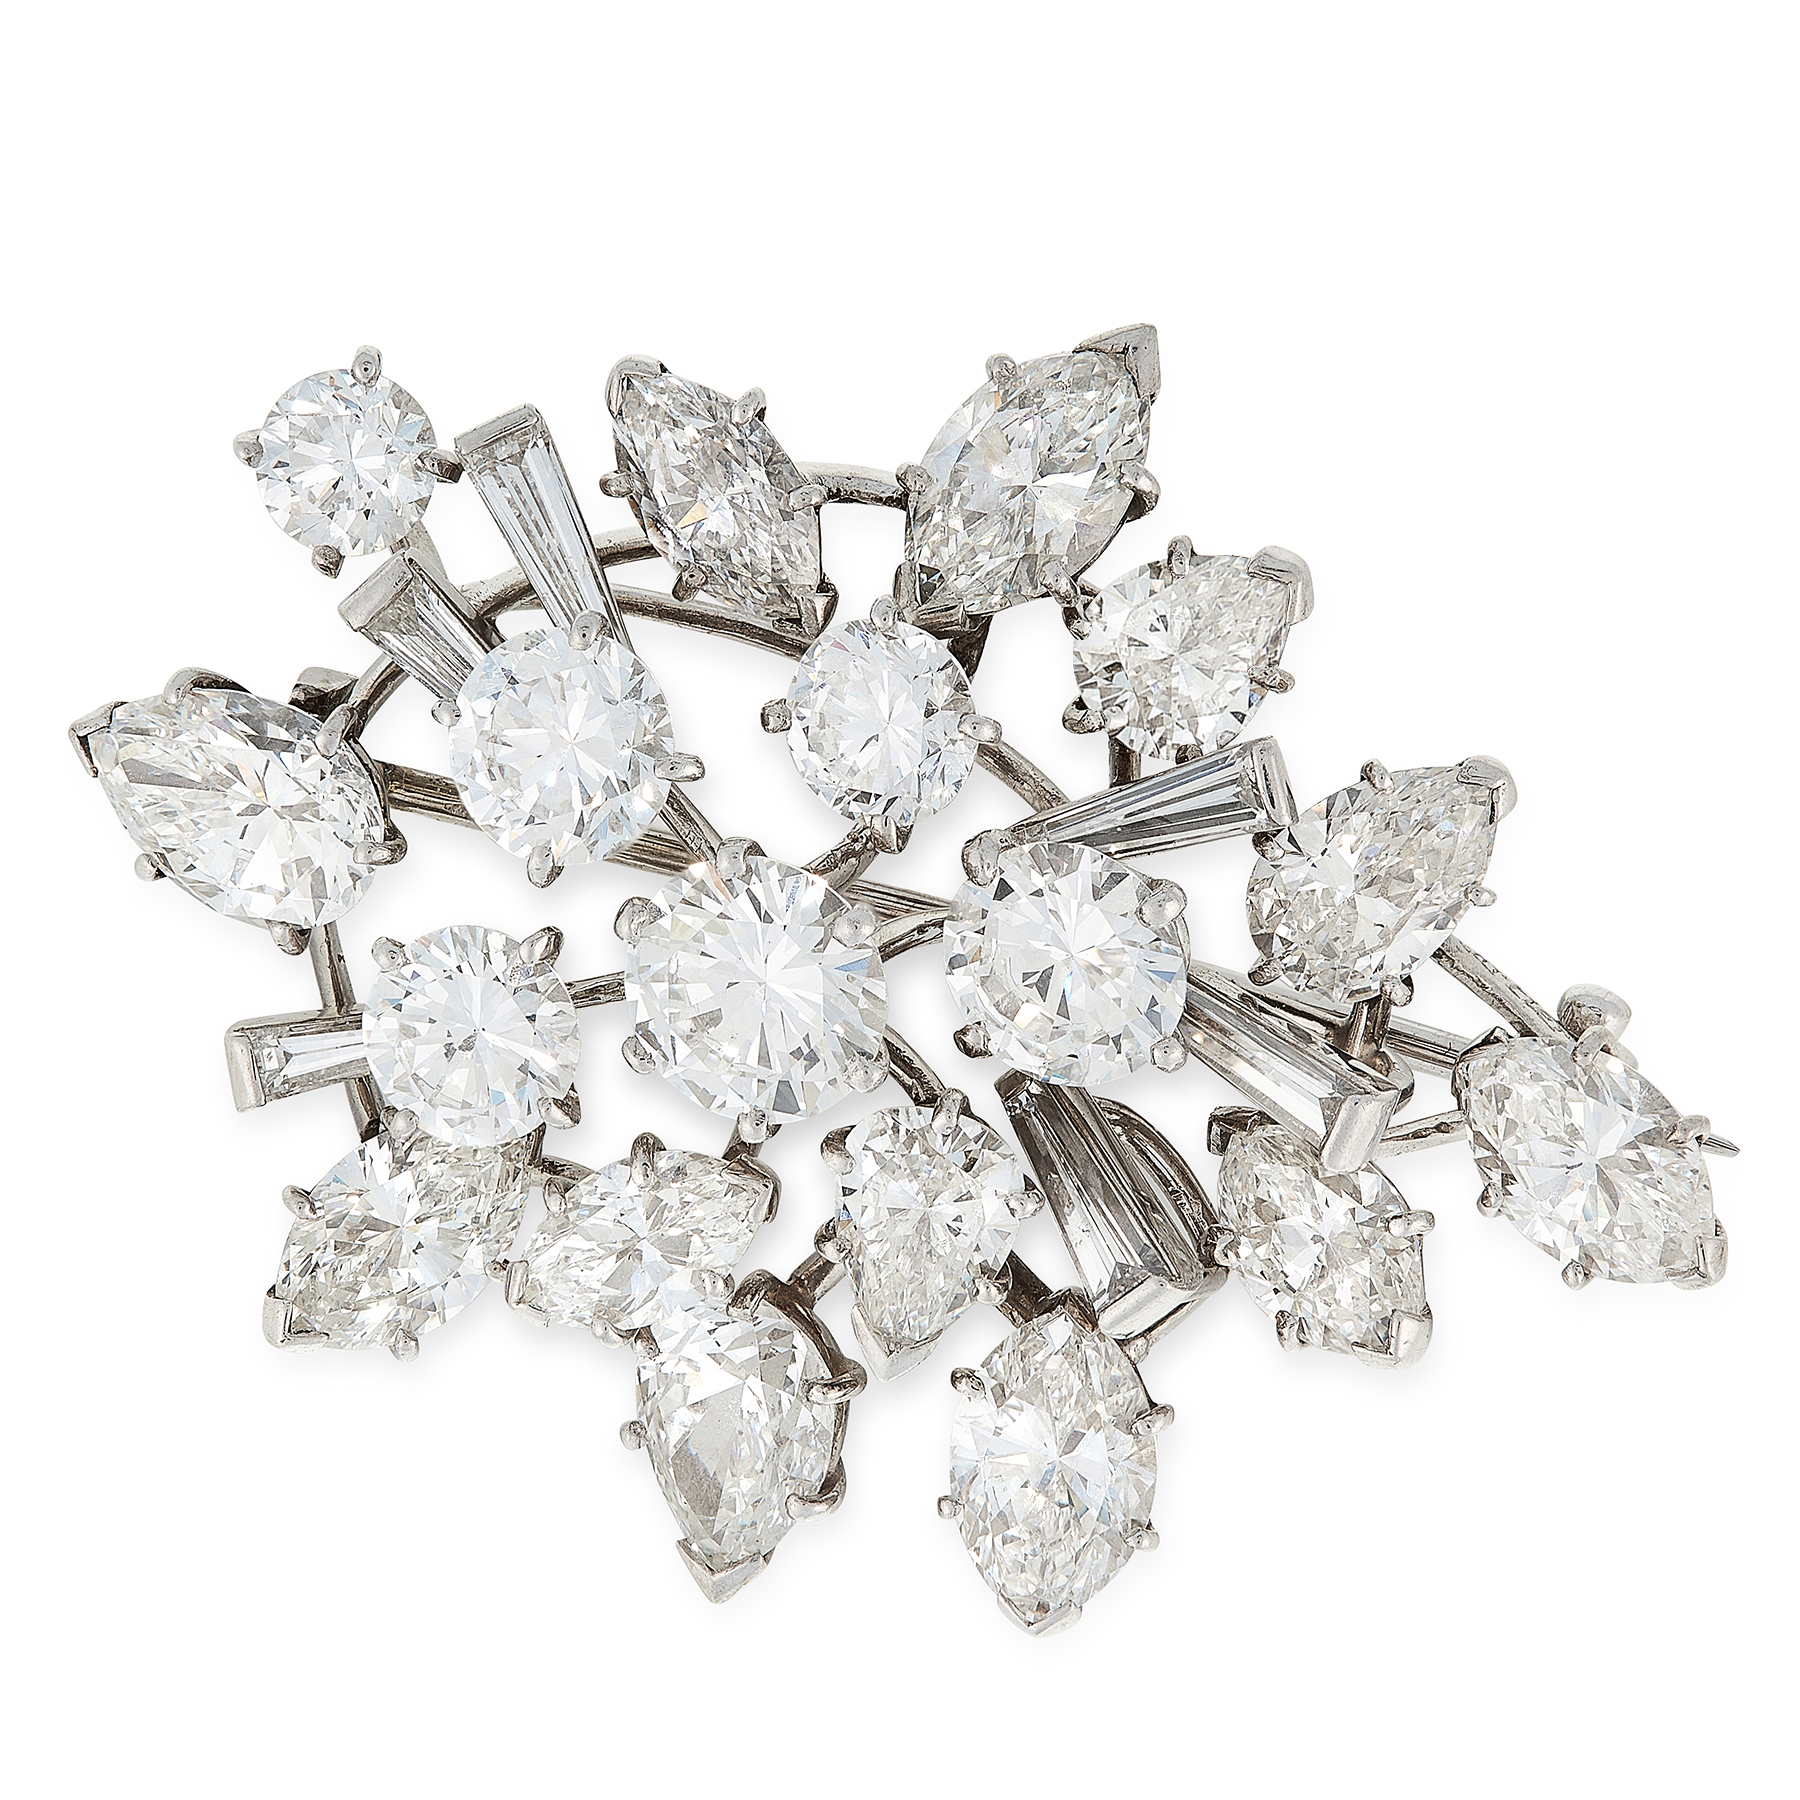 A VINTAGE DIAMOND BROOCH, CARTIER in 18ct white gold and platinum, designed as a spray of round,